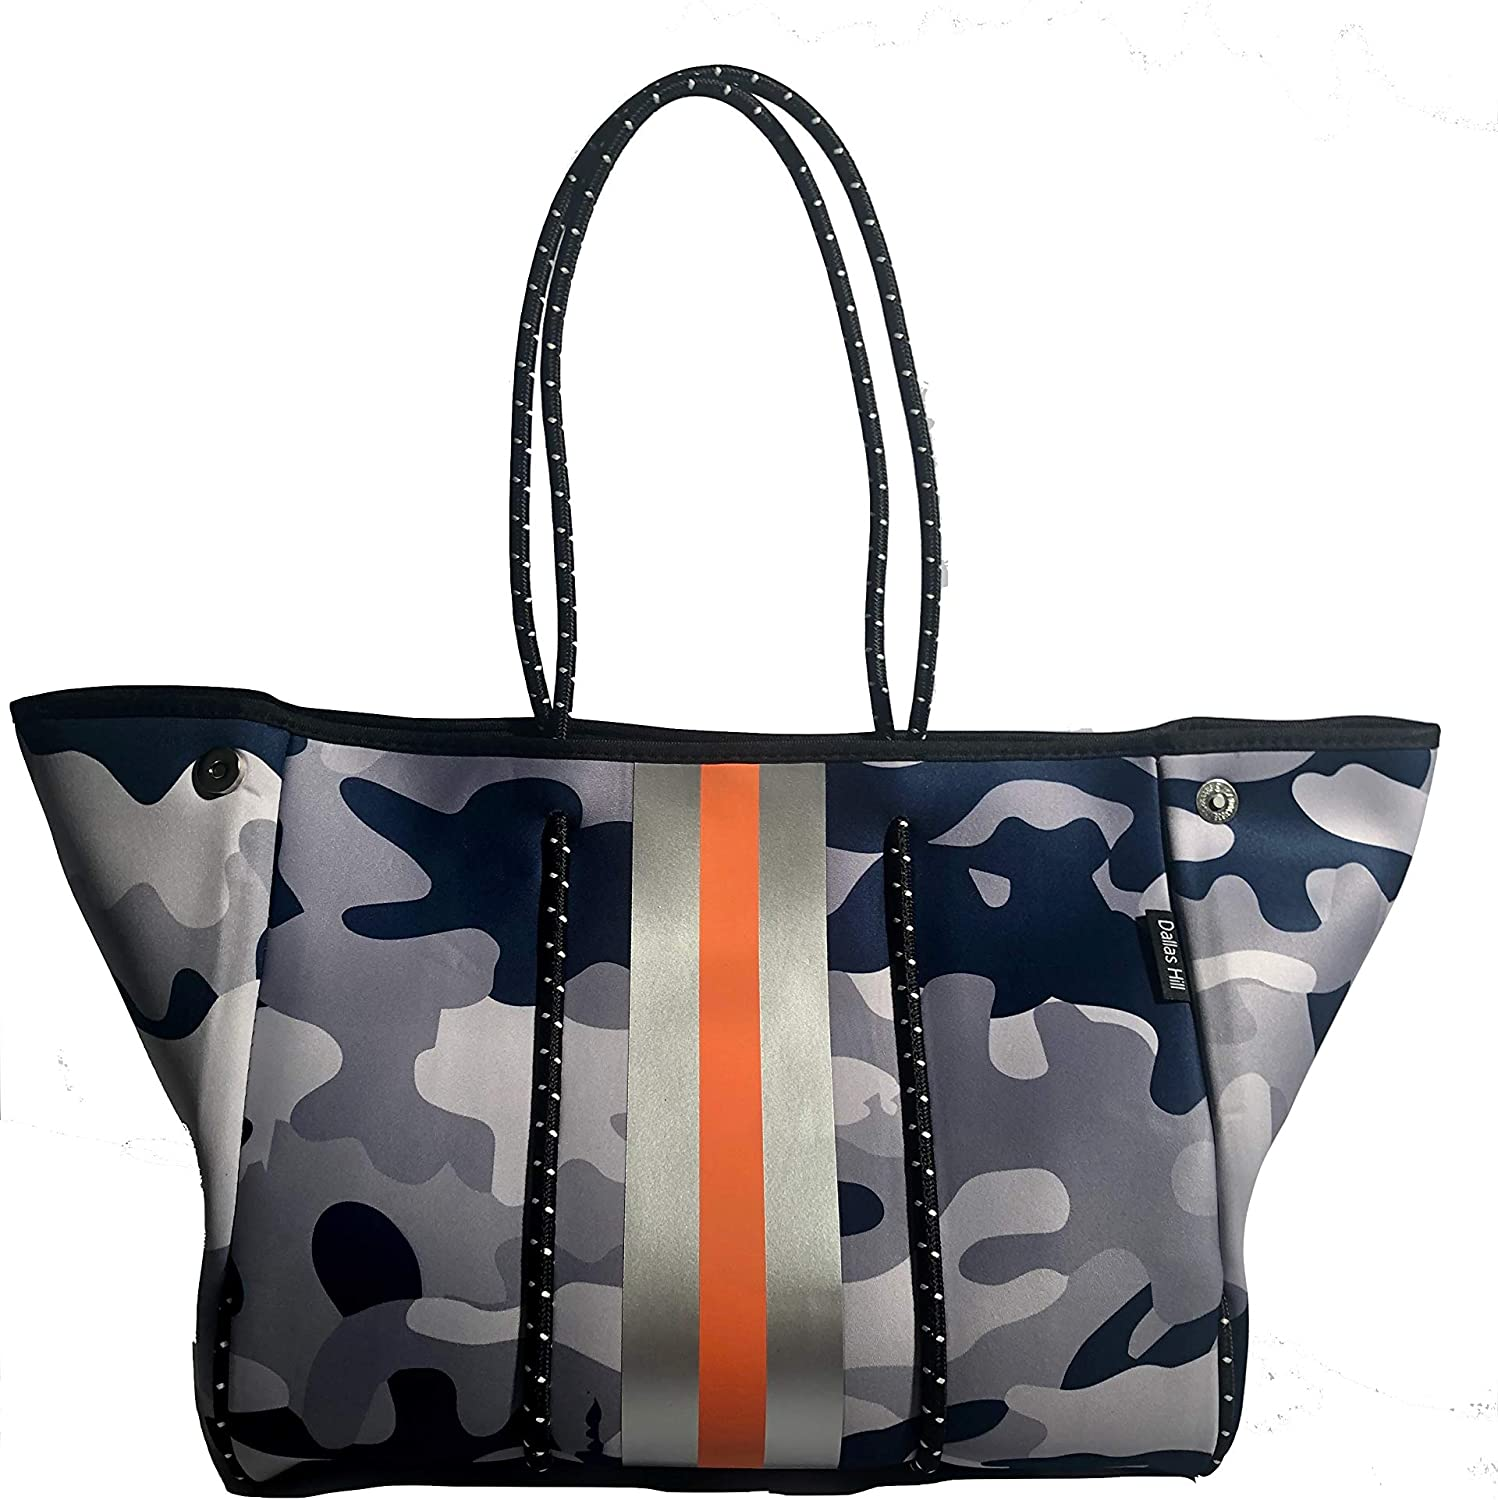 Neoprene Blue Camo Orange Large Beach Tote Womens XLarge Totes Bags Sports Travel Gym Studio Office School Pool Women Teen Girls Family Baby Teacher Bag Catchall by Dallas Hill